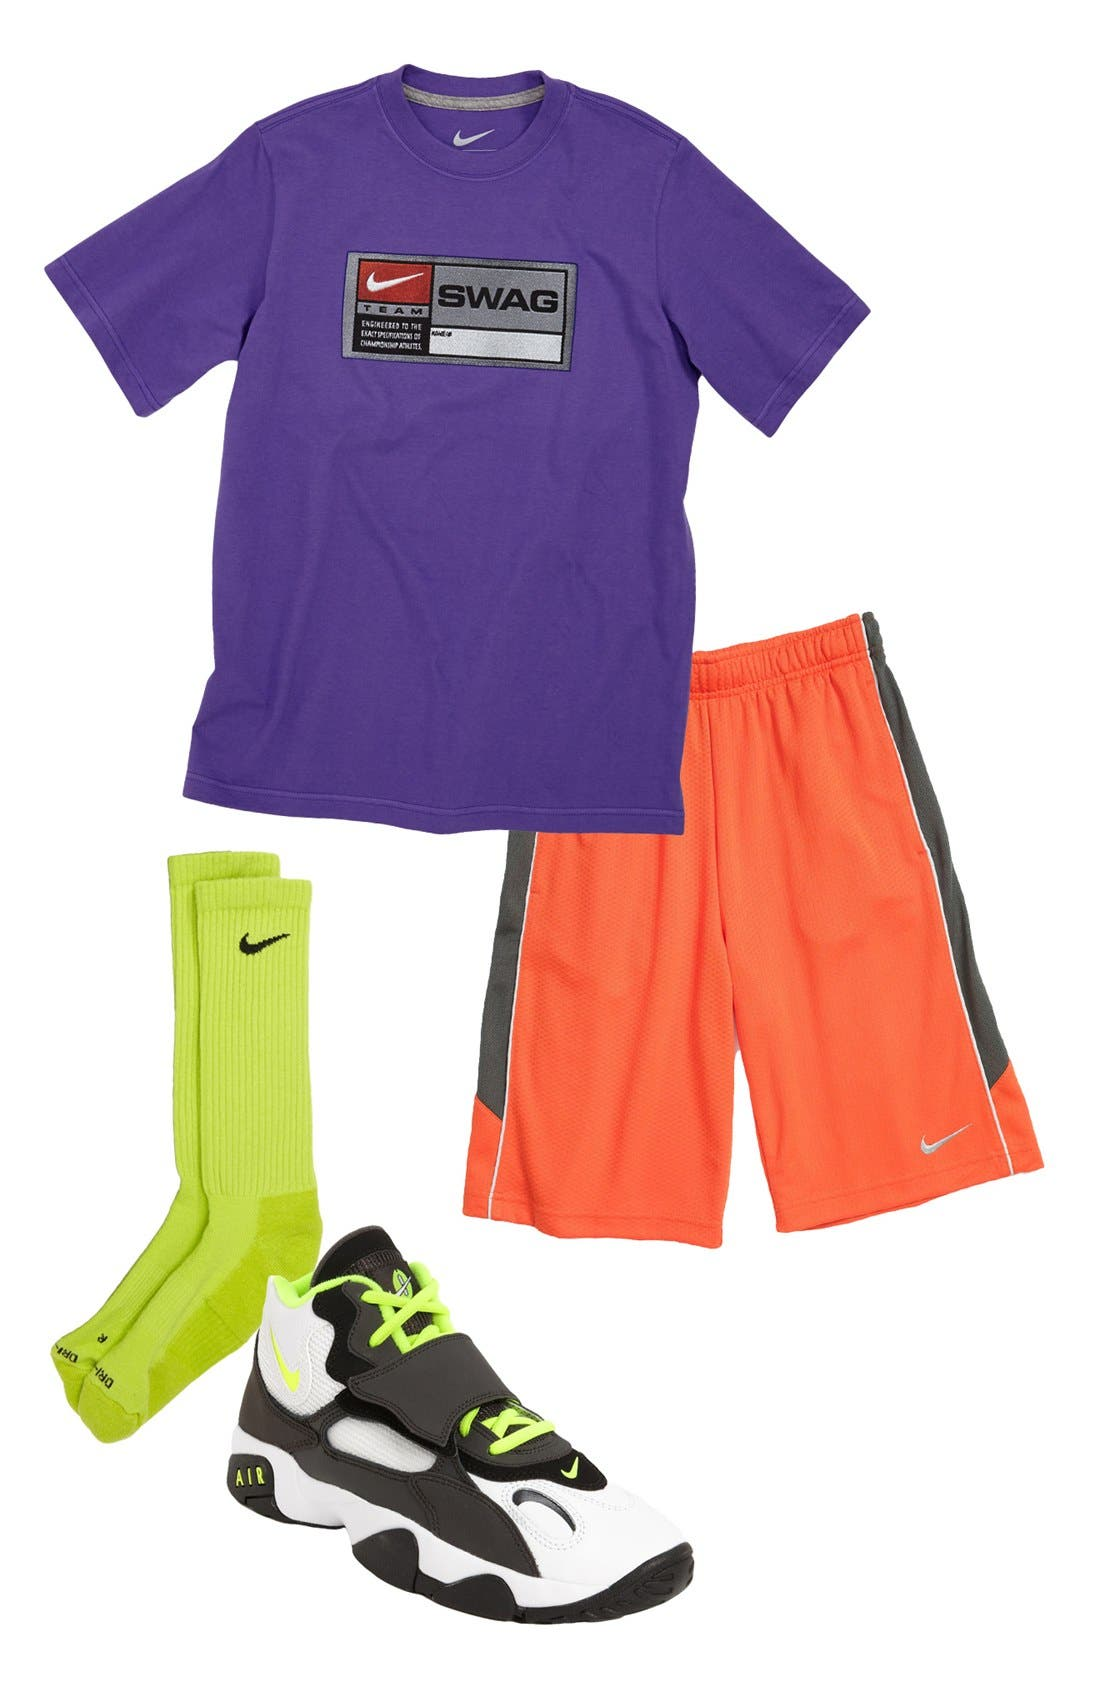 Alternate Image 1 Selected - Nike T-Shirt, Shorts, Socks & Sneaker (Big Boys)